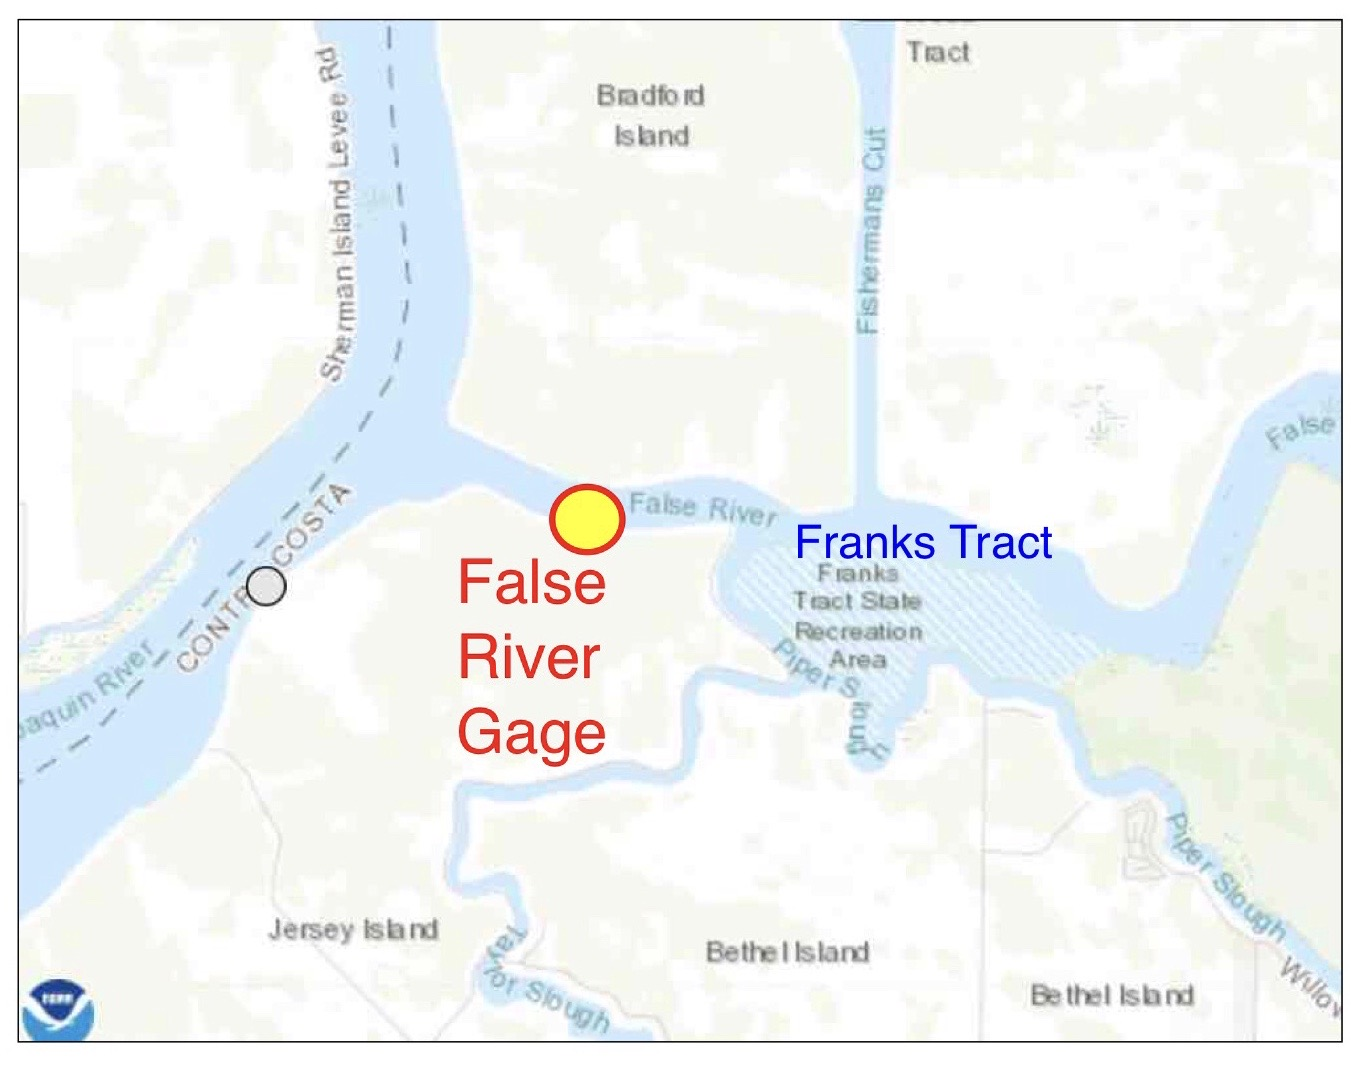 Figure 1. Franks Tract and False River gage location in west Delta.